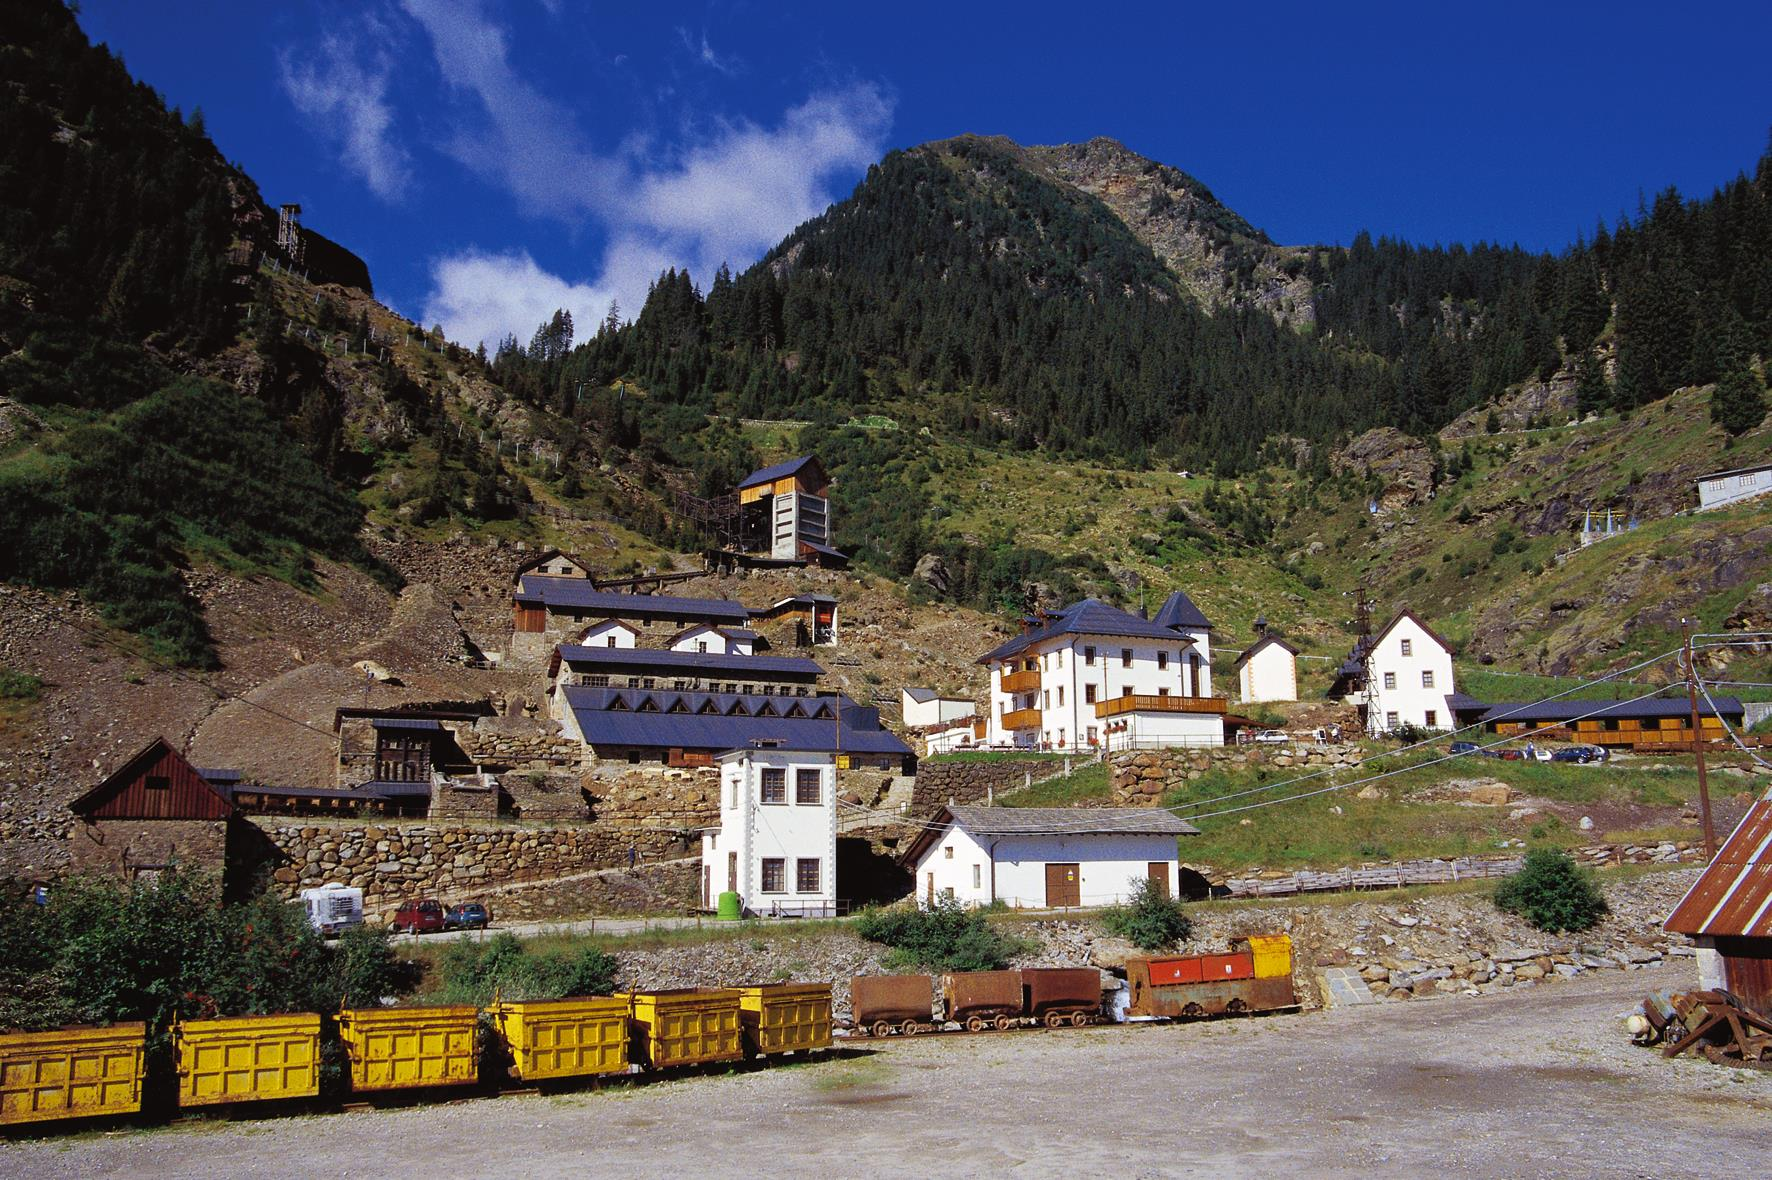 South Tyrol Museum of Mining - Mining World Ridnaun Schneeberg